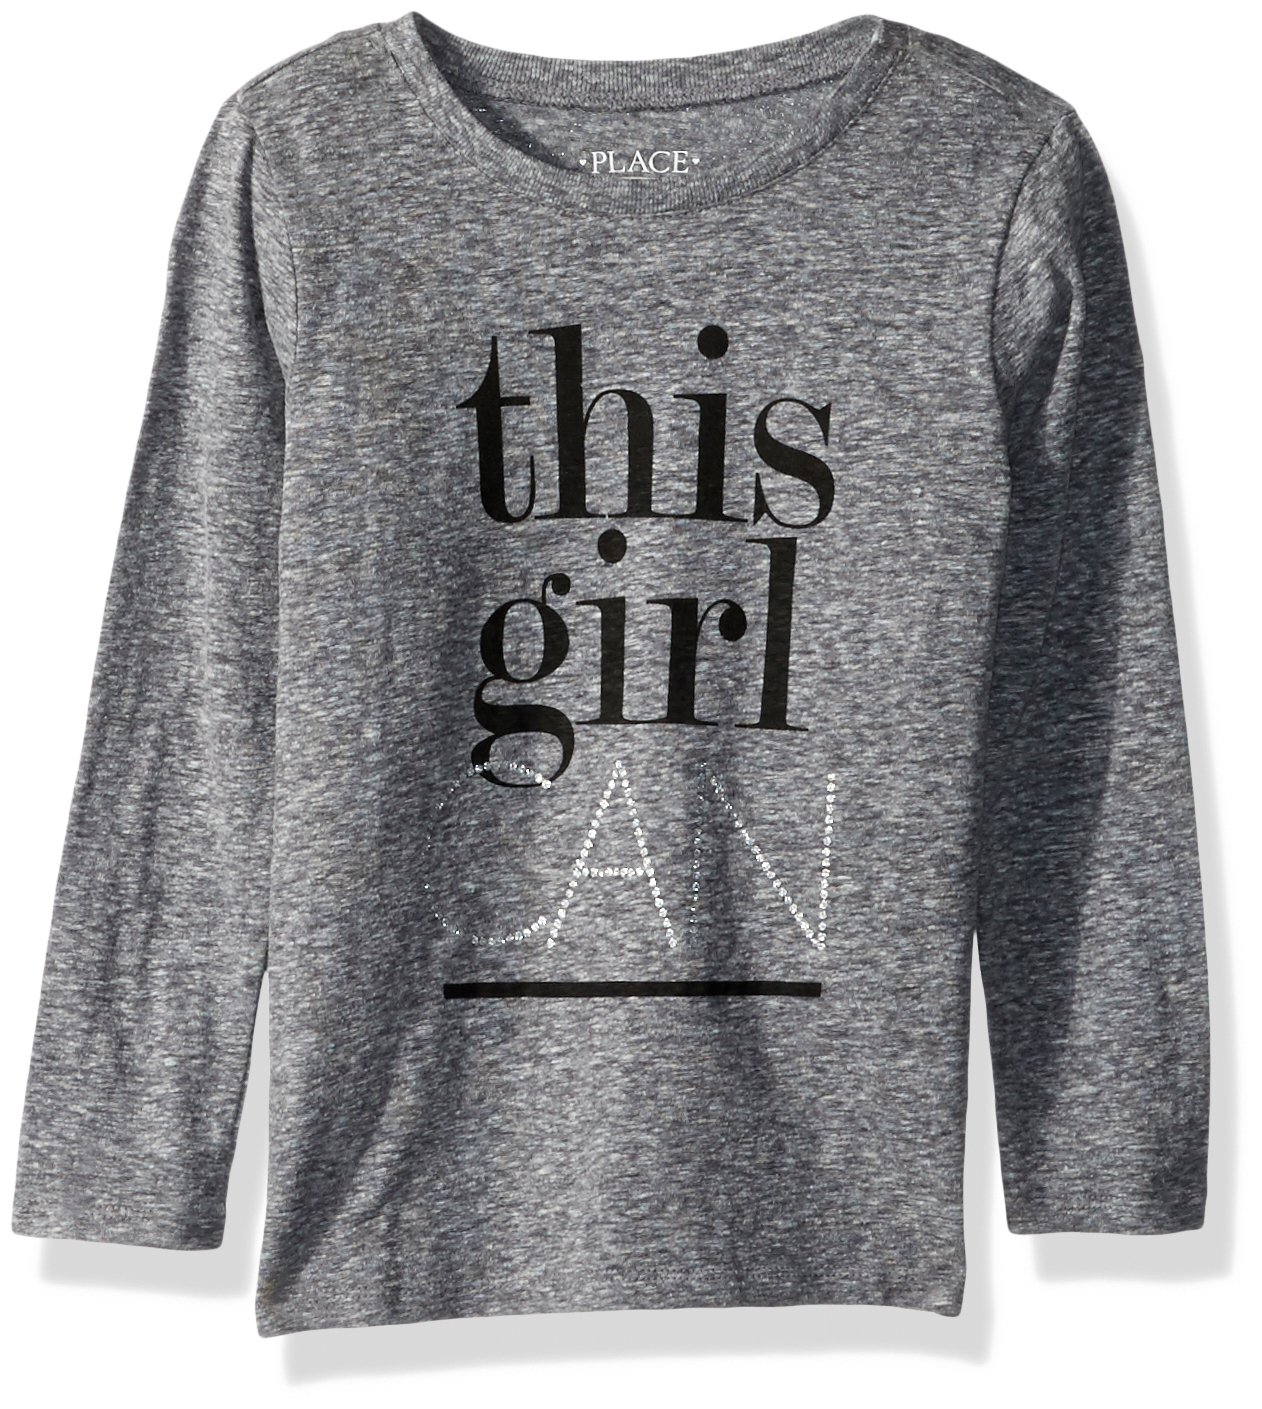 The Children's Place Girls' Long Sleeve T-Shirt 3